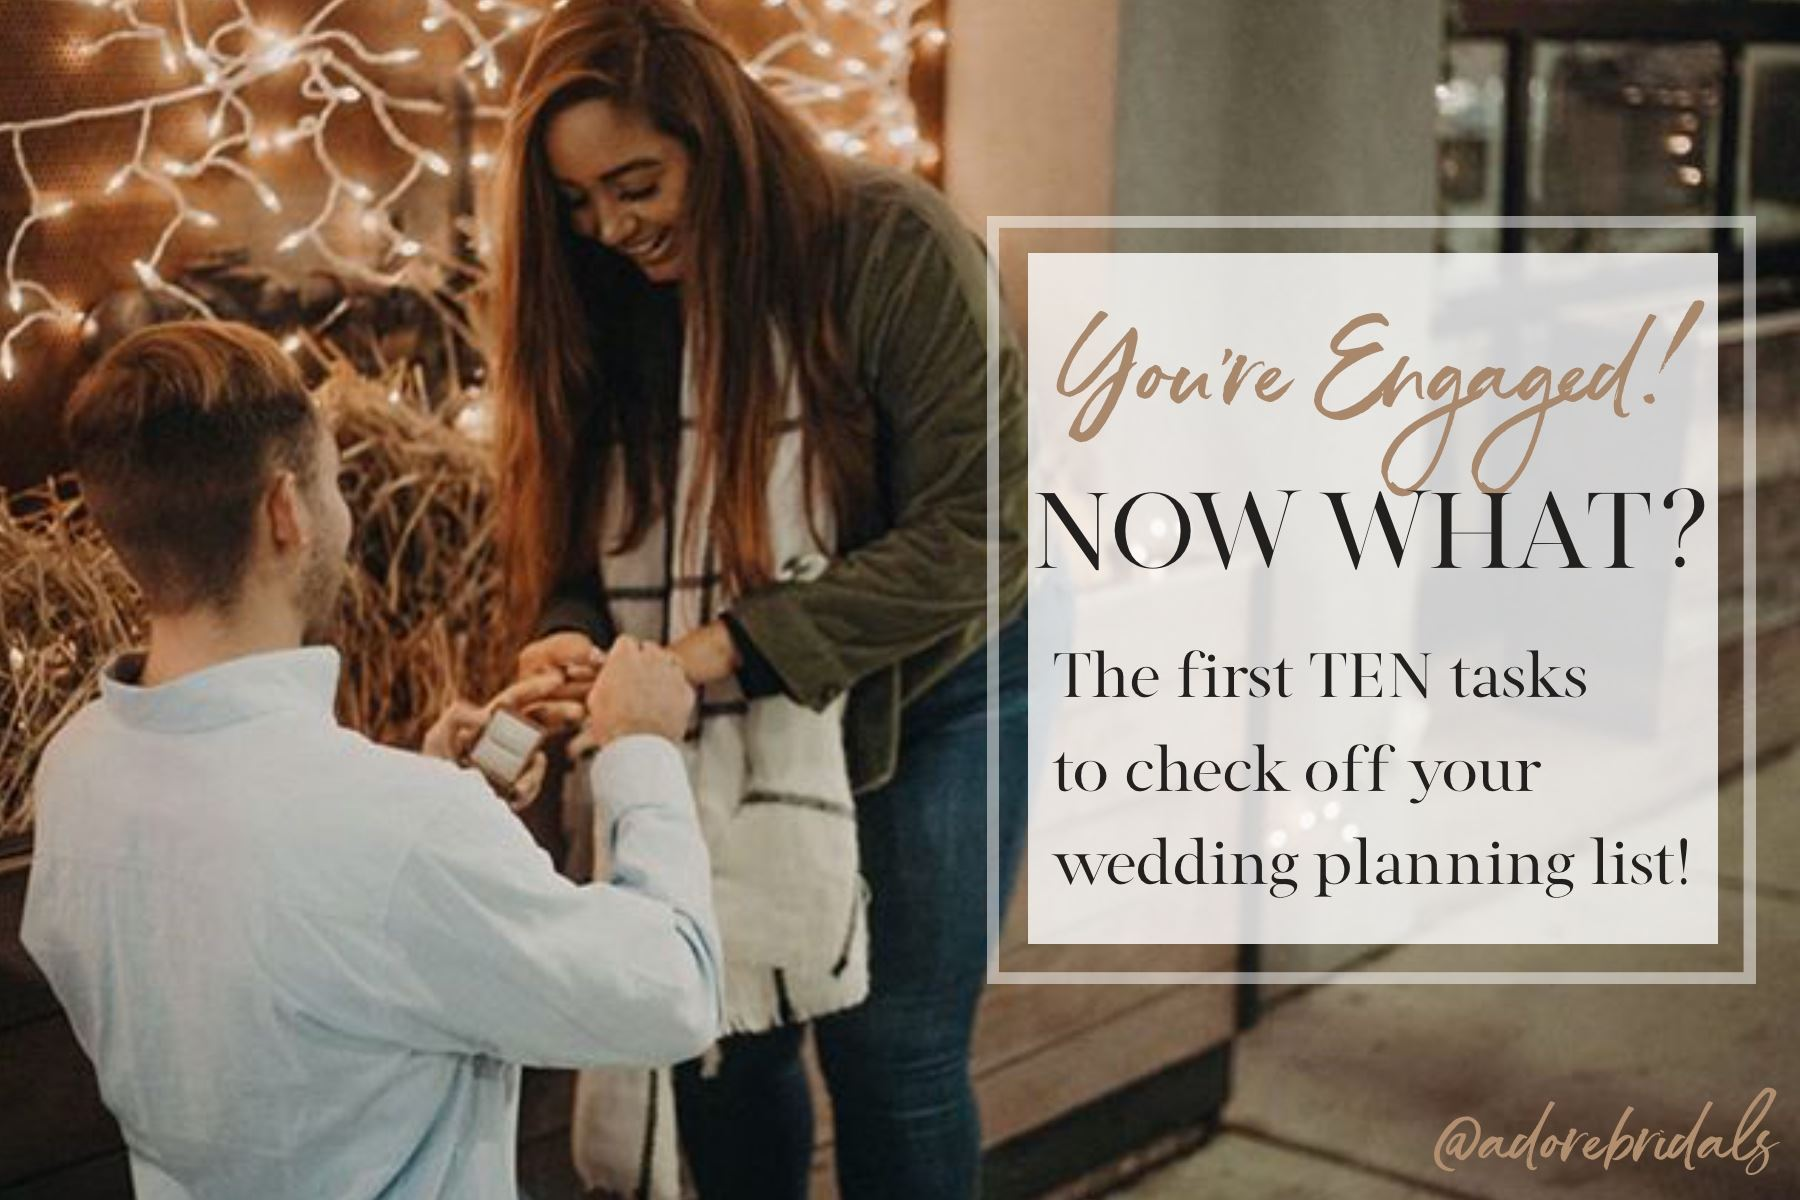 You're engaged, now what? The first 10 wedding planning tasks to check off your list!. Desktop Image